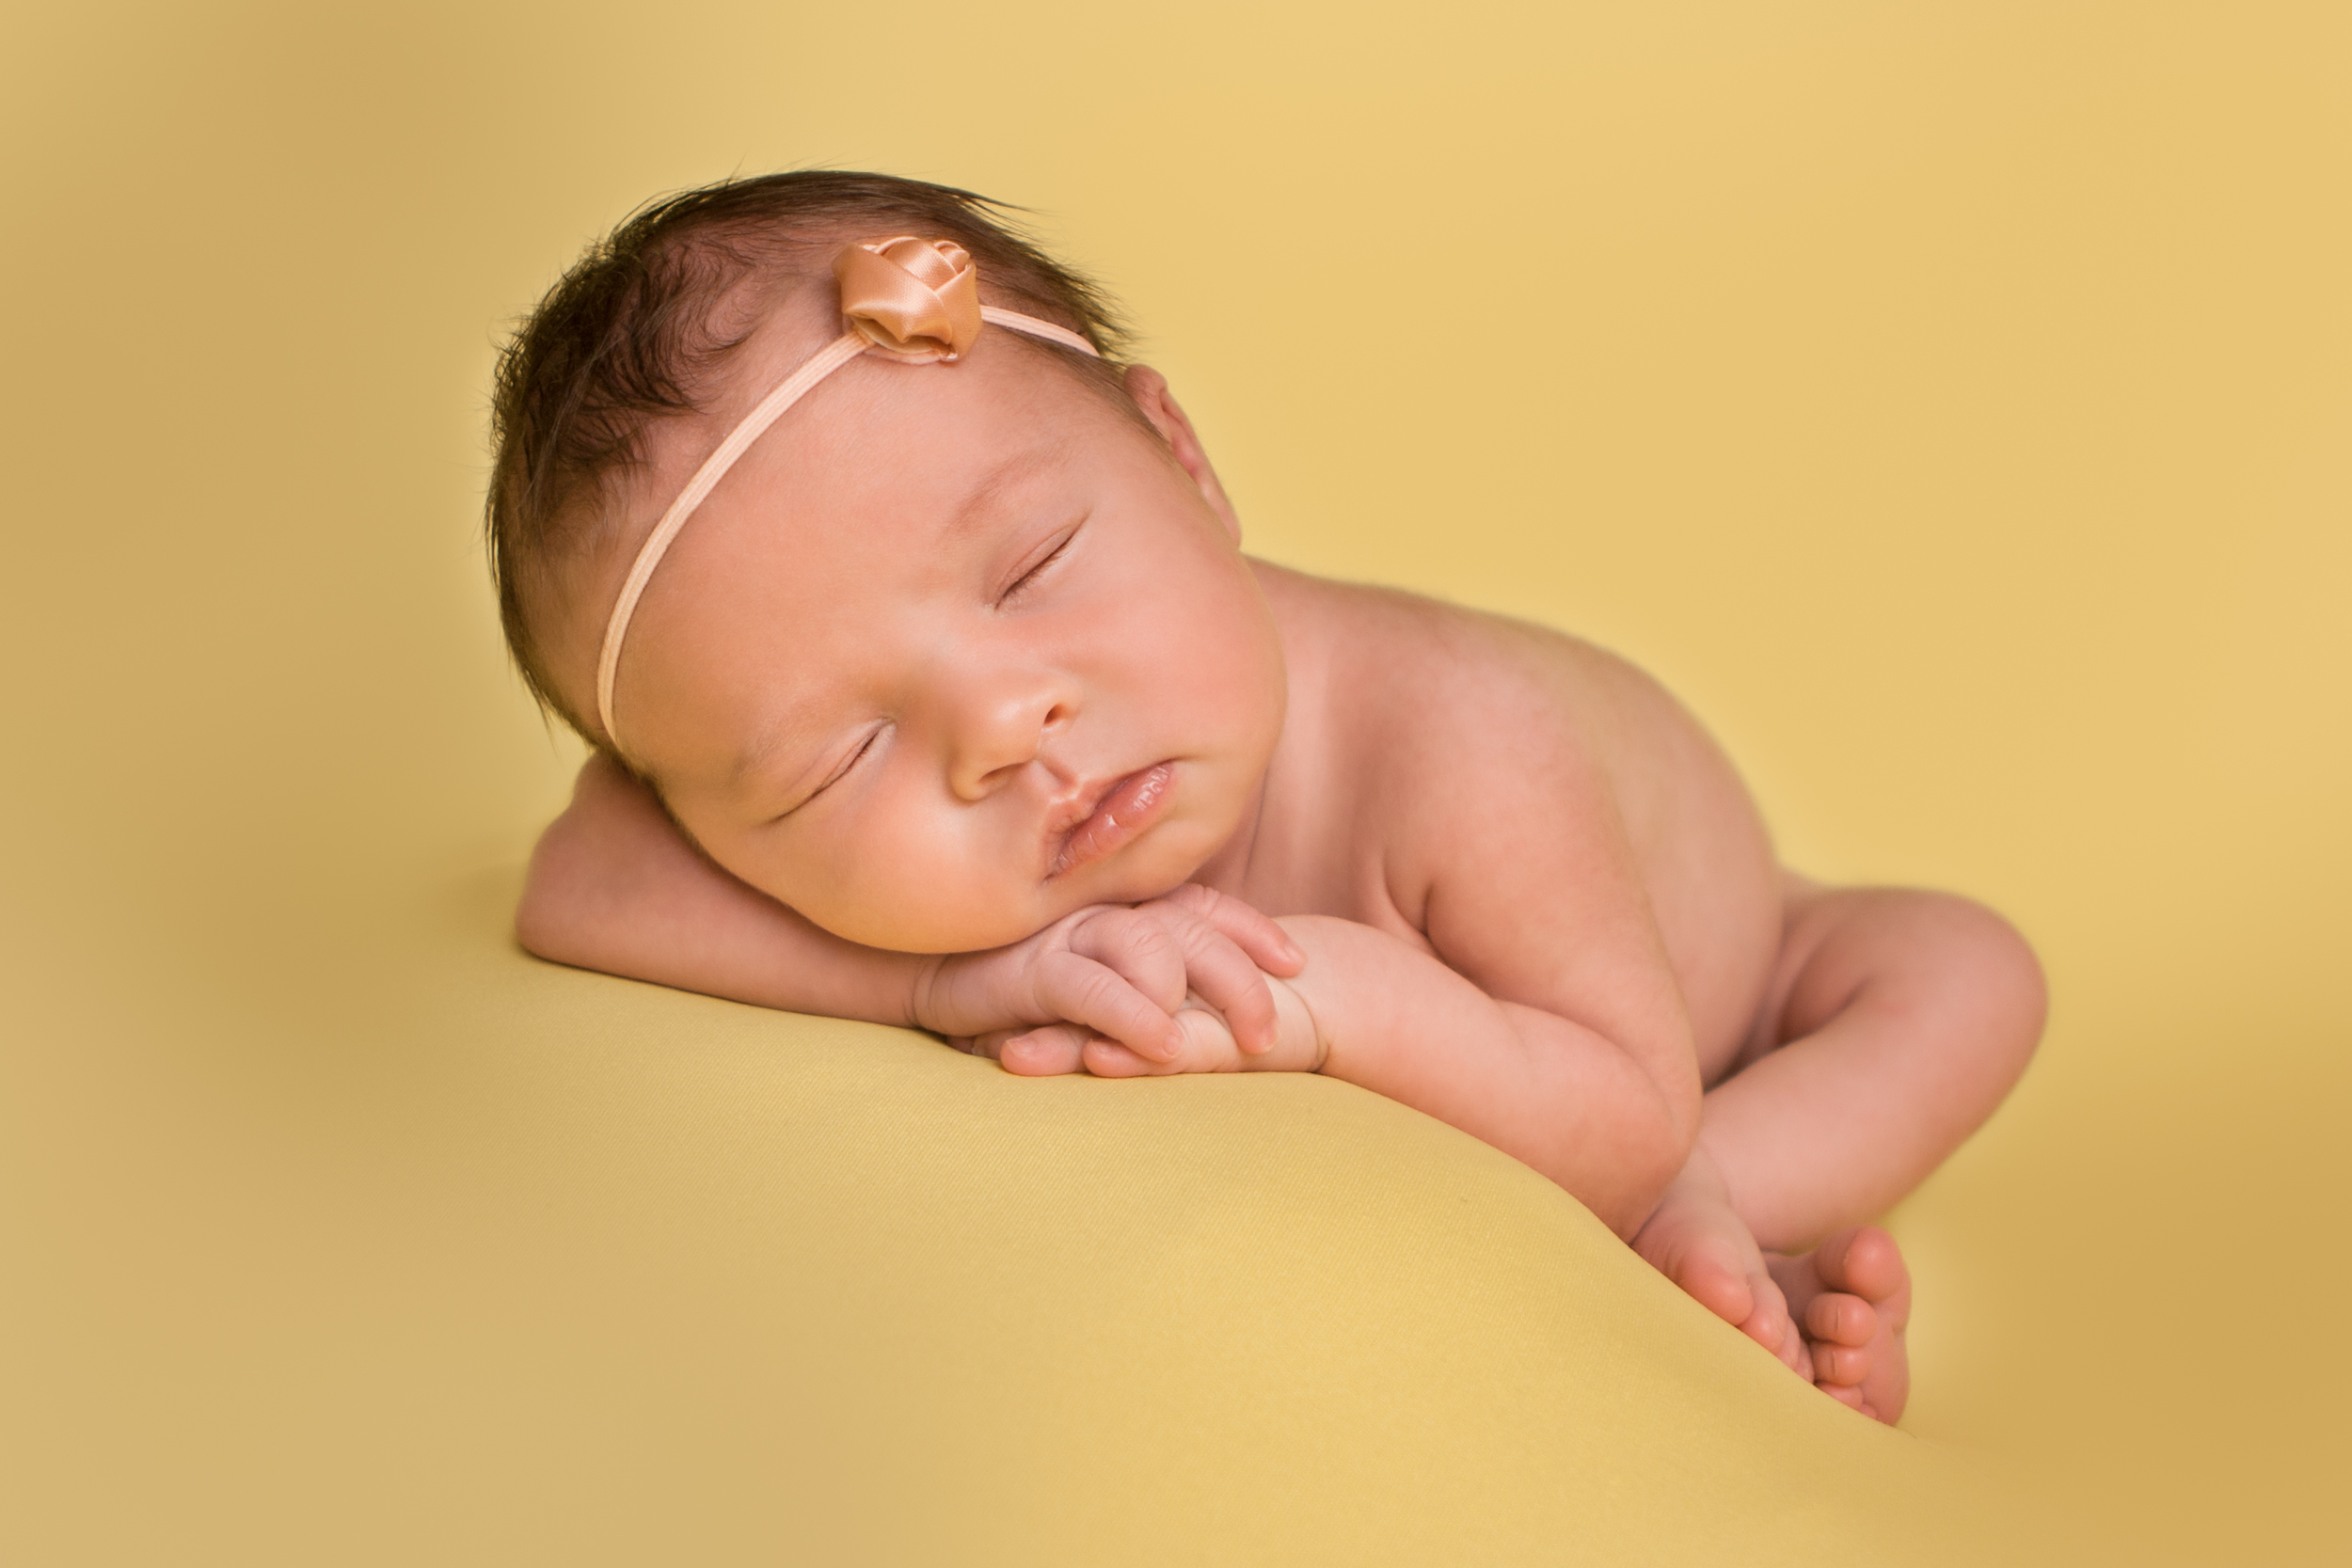 Newborn baby girl sleeping pose, rose pink flower headband, yellow blanket fabric backdrop, head chin on hands bean bag pose.